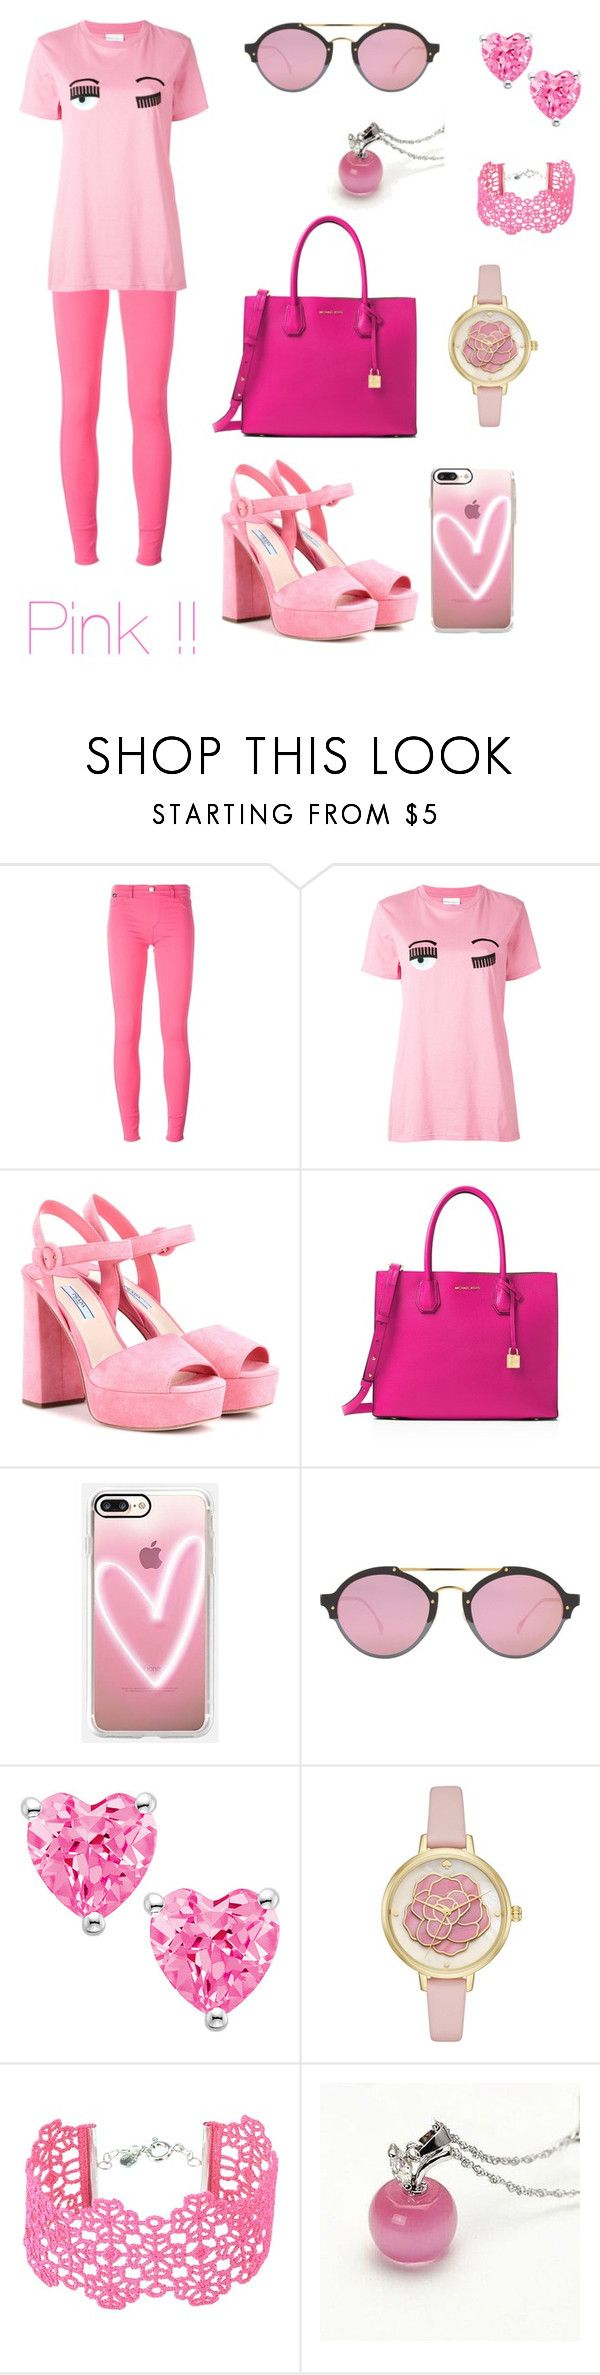 """On Wednesday we wear pink"" by amelie-martins ❤ liked on Polyvore featuring Love Moschino, Chiara Ferragni, Prada, MICHAEL Michael Kors, Casetify, Illesteva, Kate Spade and Cruciani"